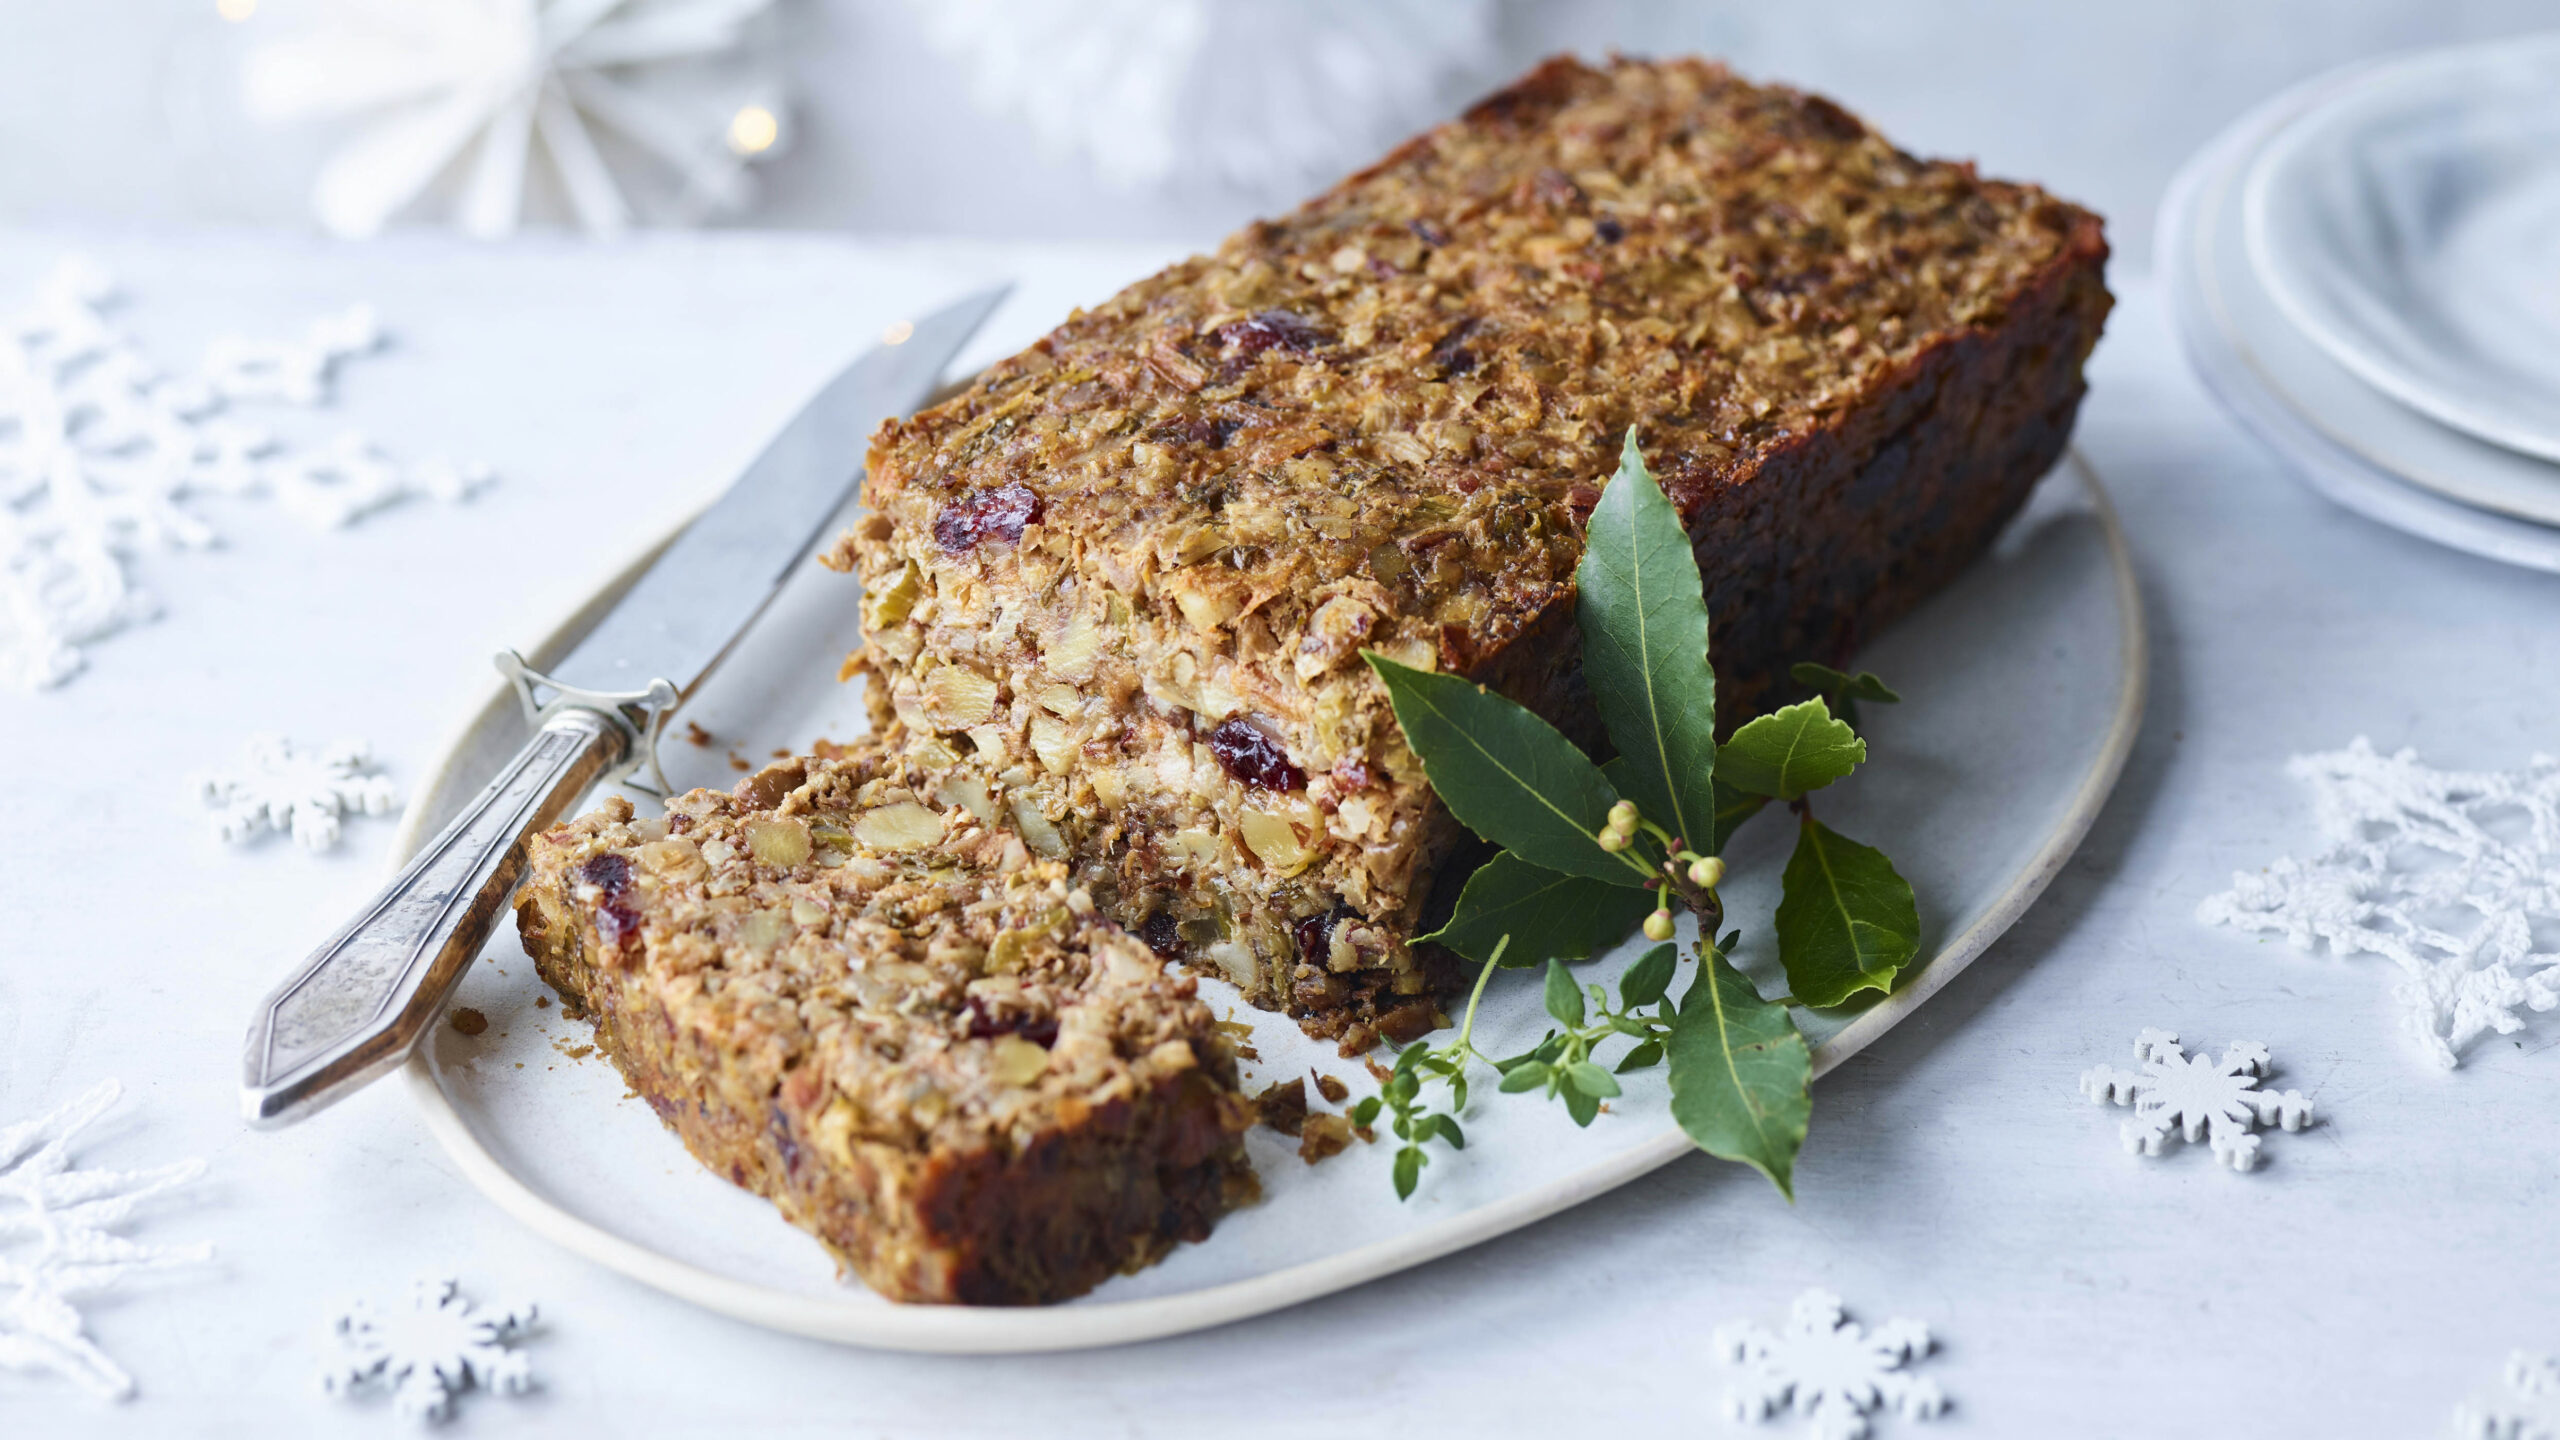 Vegan Nut Roast - Recipe Vegetarian Nut Loaf